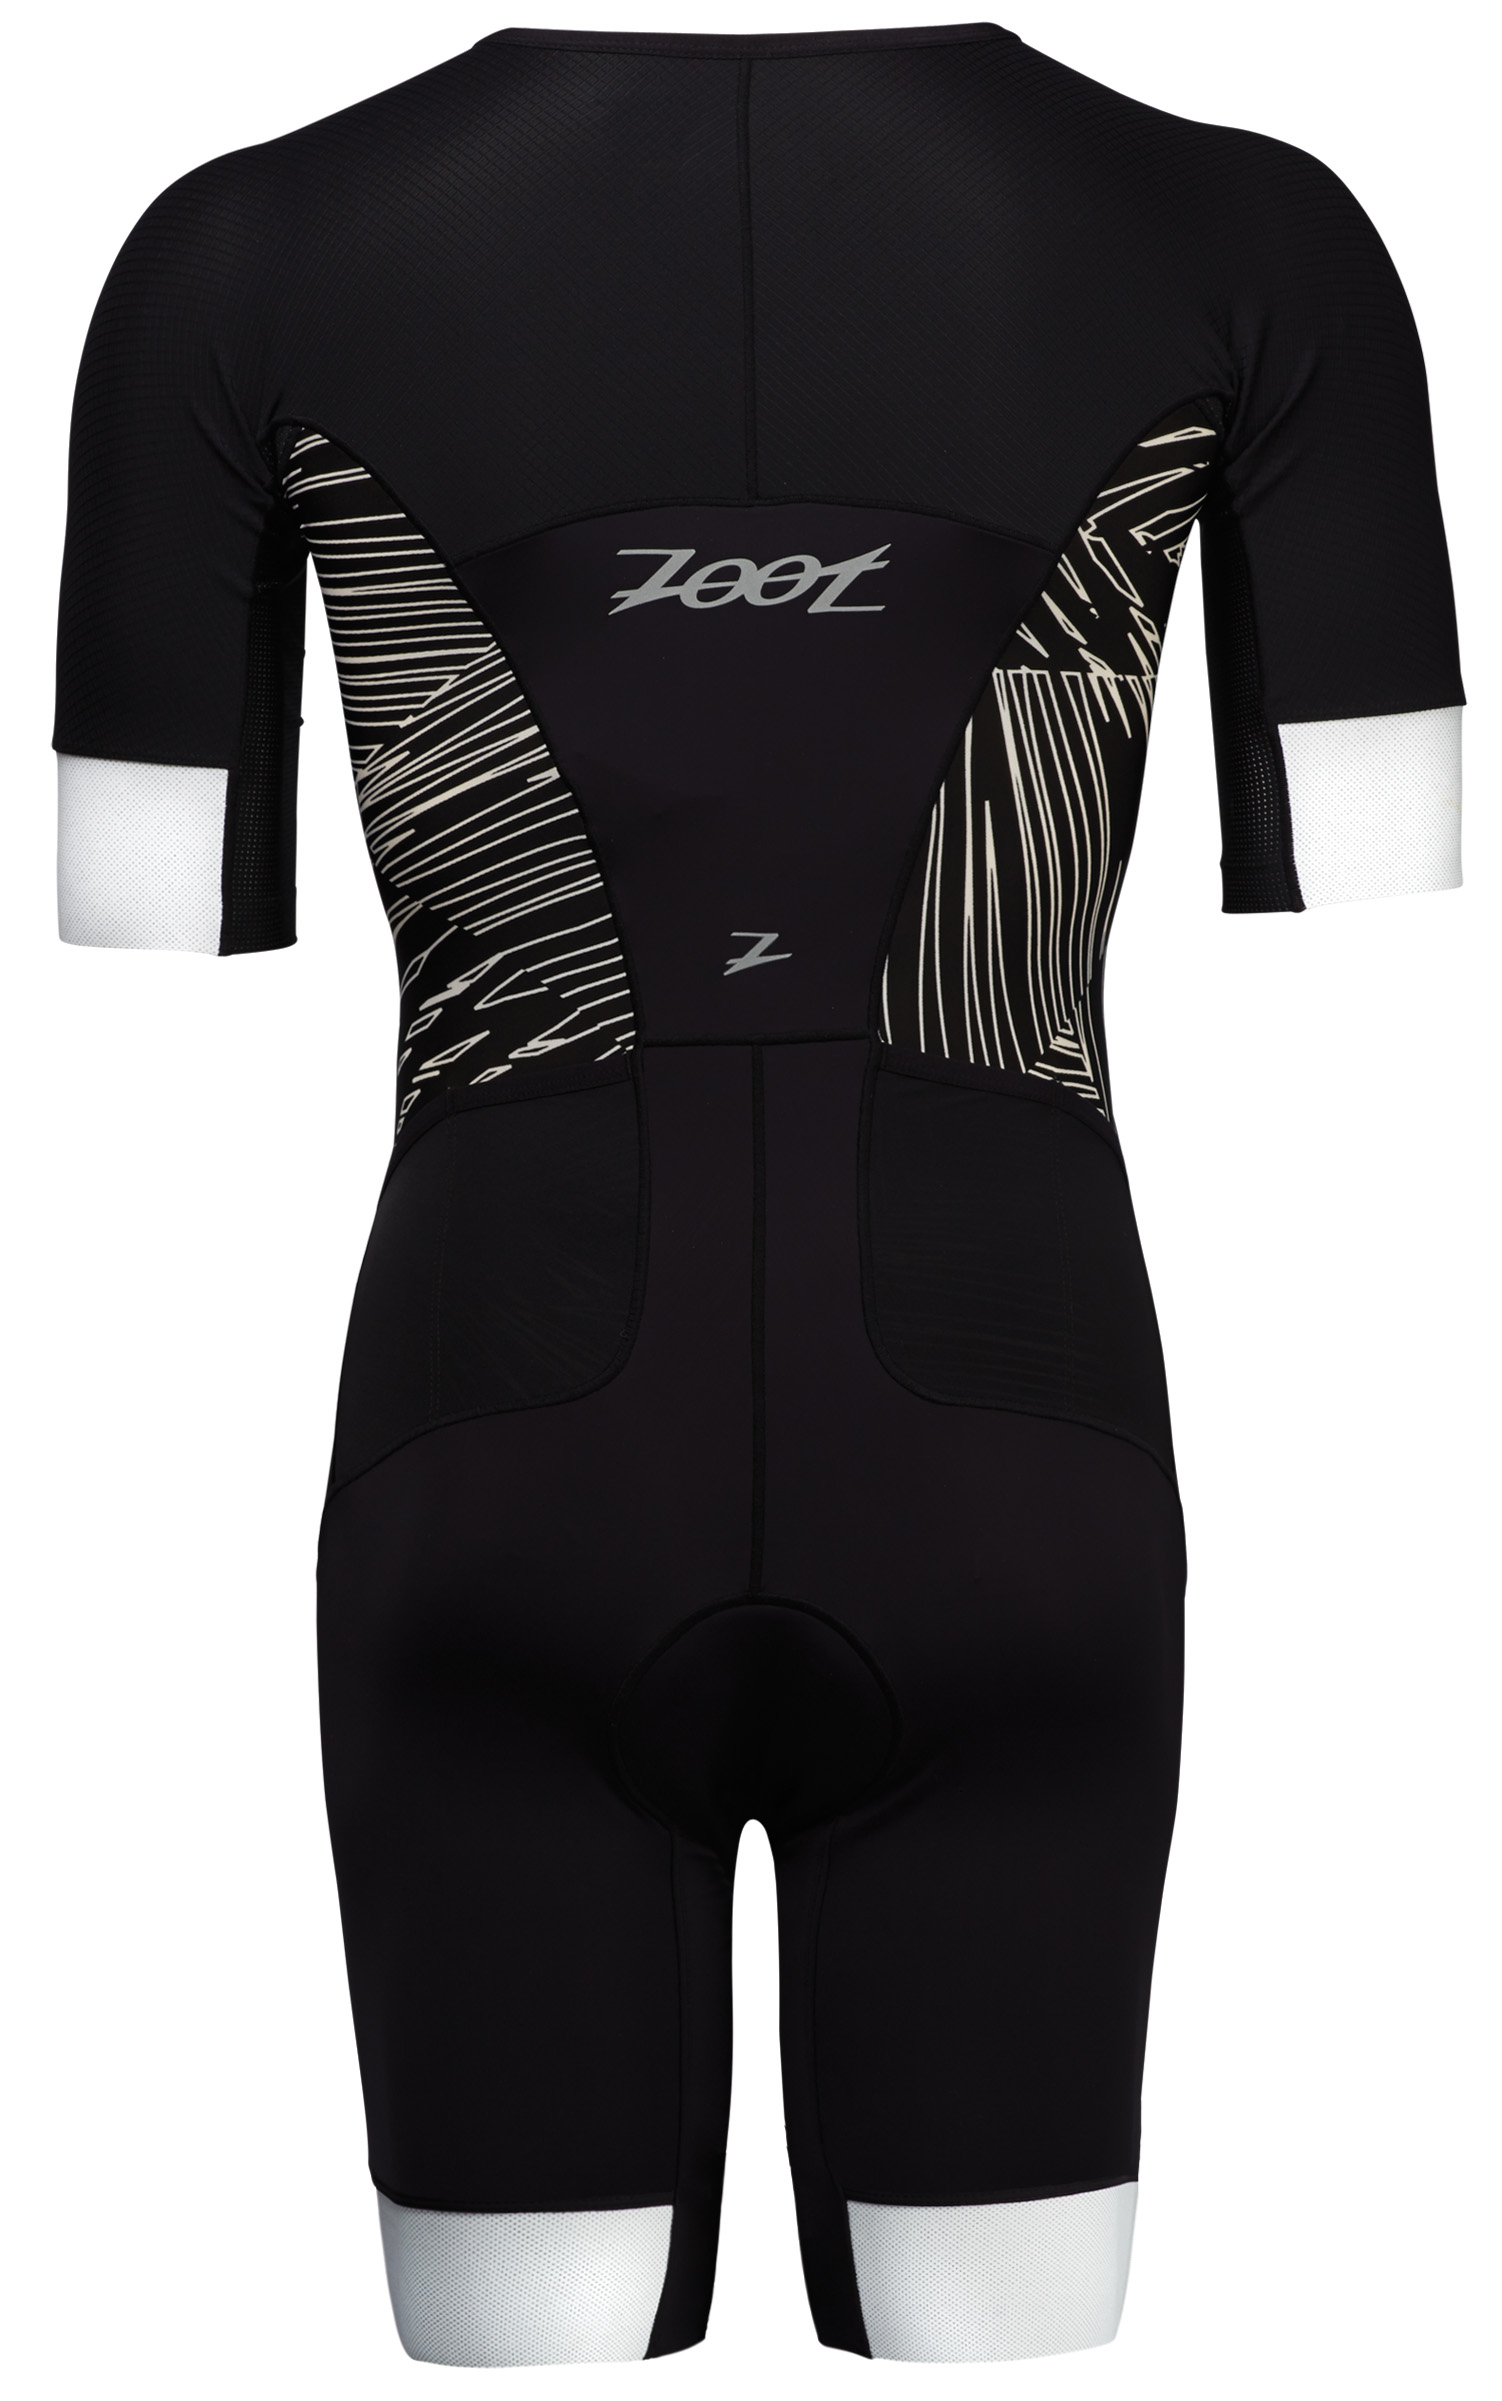 Runbreeze Tri Suit Review Skinzoot